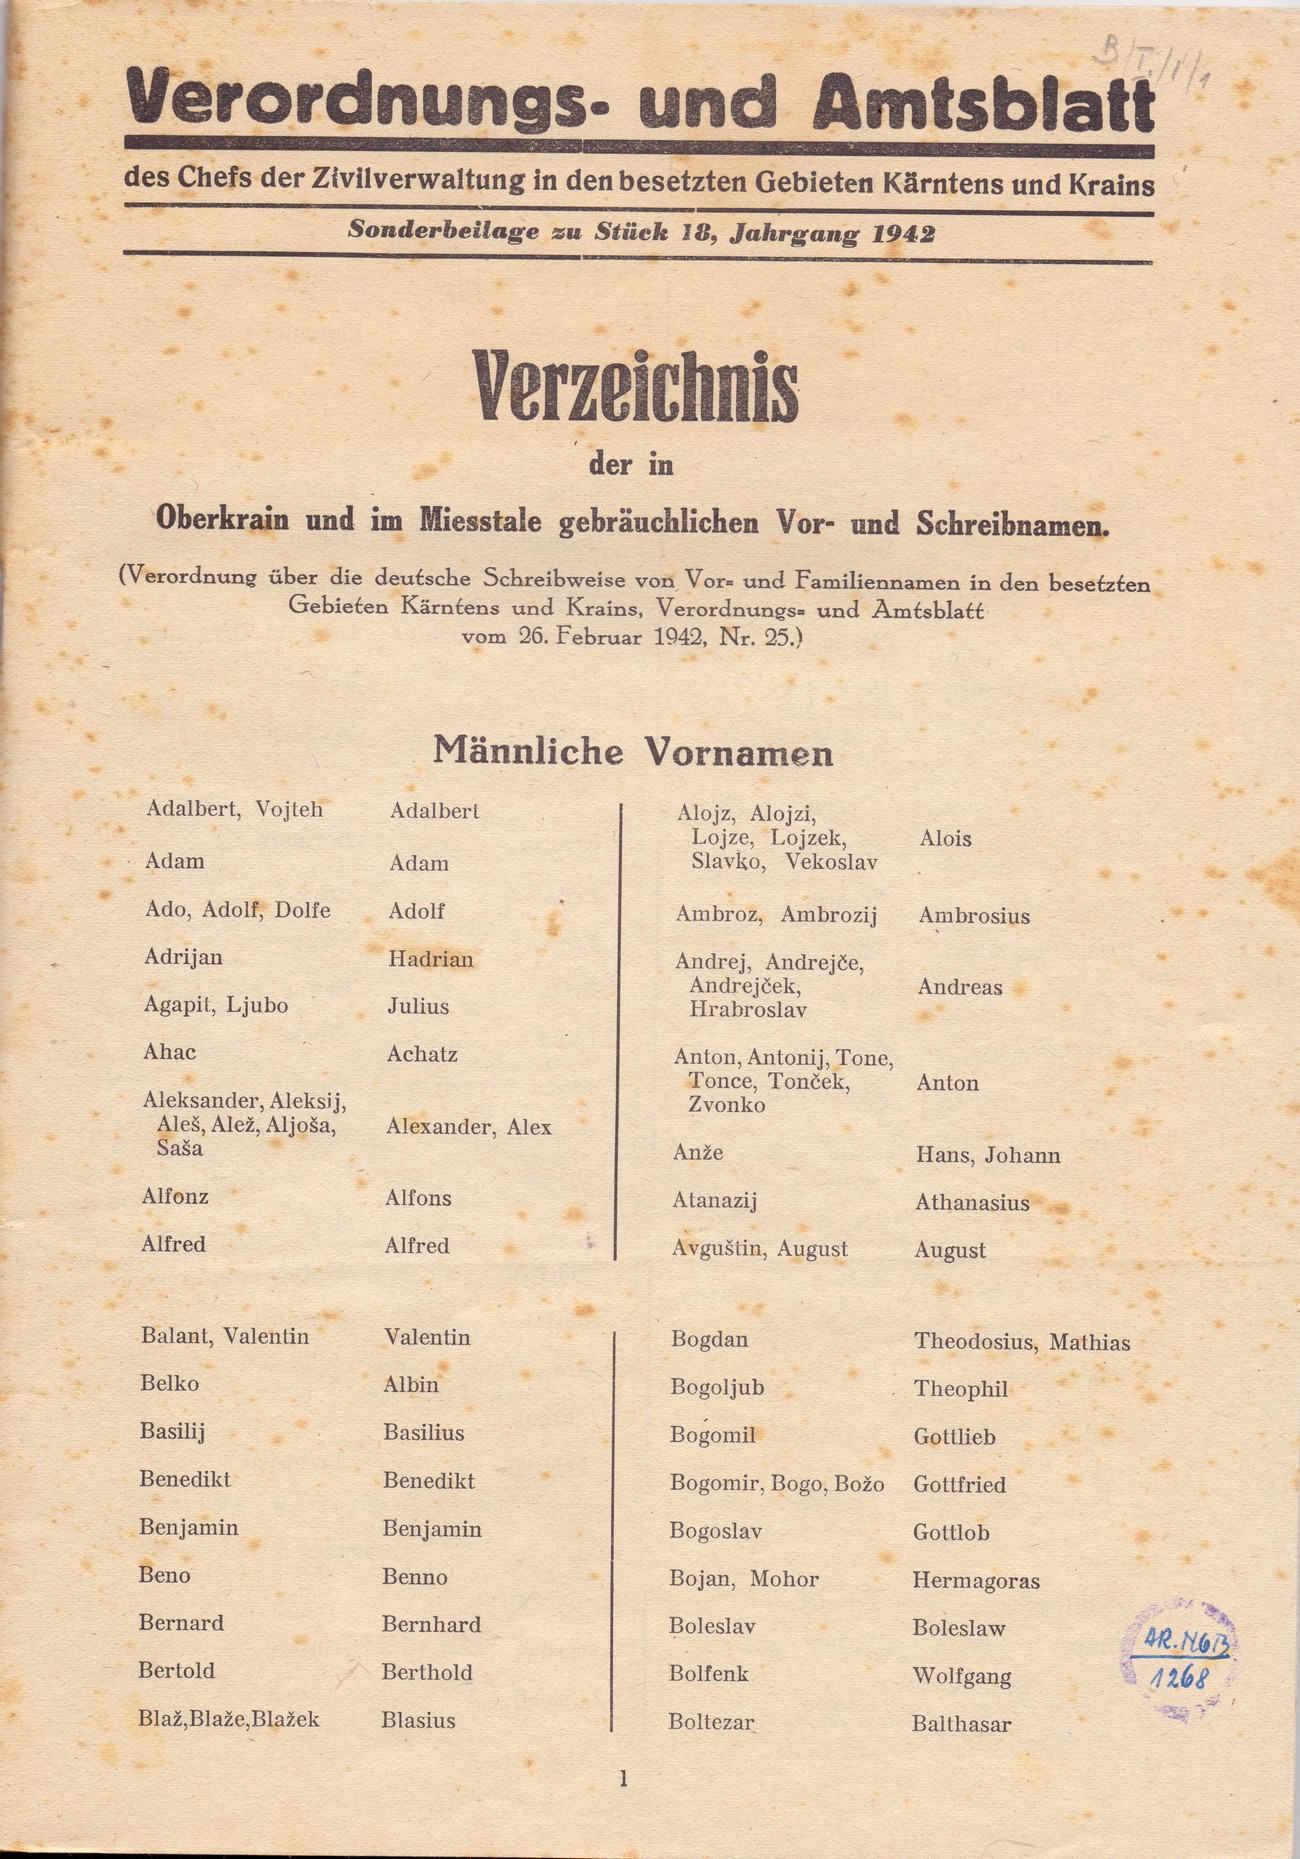 Not only place names, but also personal names were Germanised. The German invaders did so with the help of a handbook. SI ZAL ŠKL, 0268, 41, B-I-1-1.